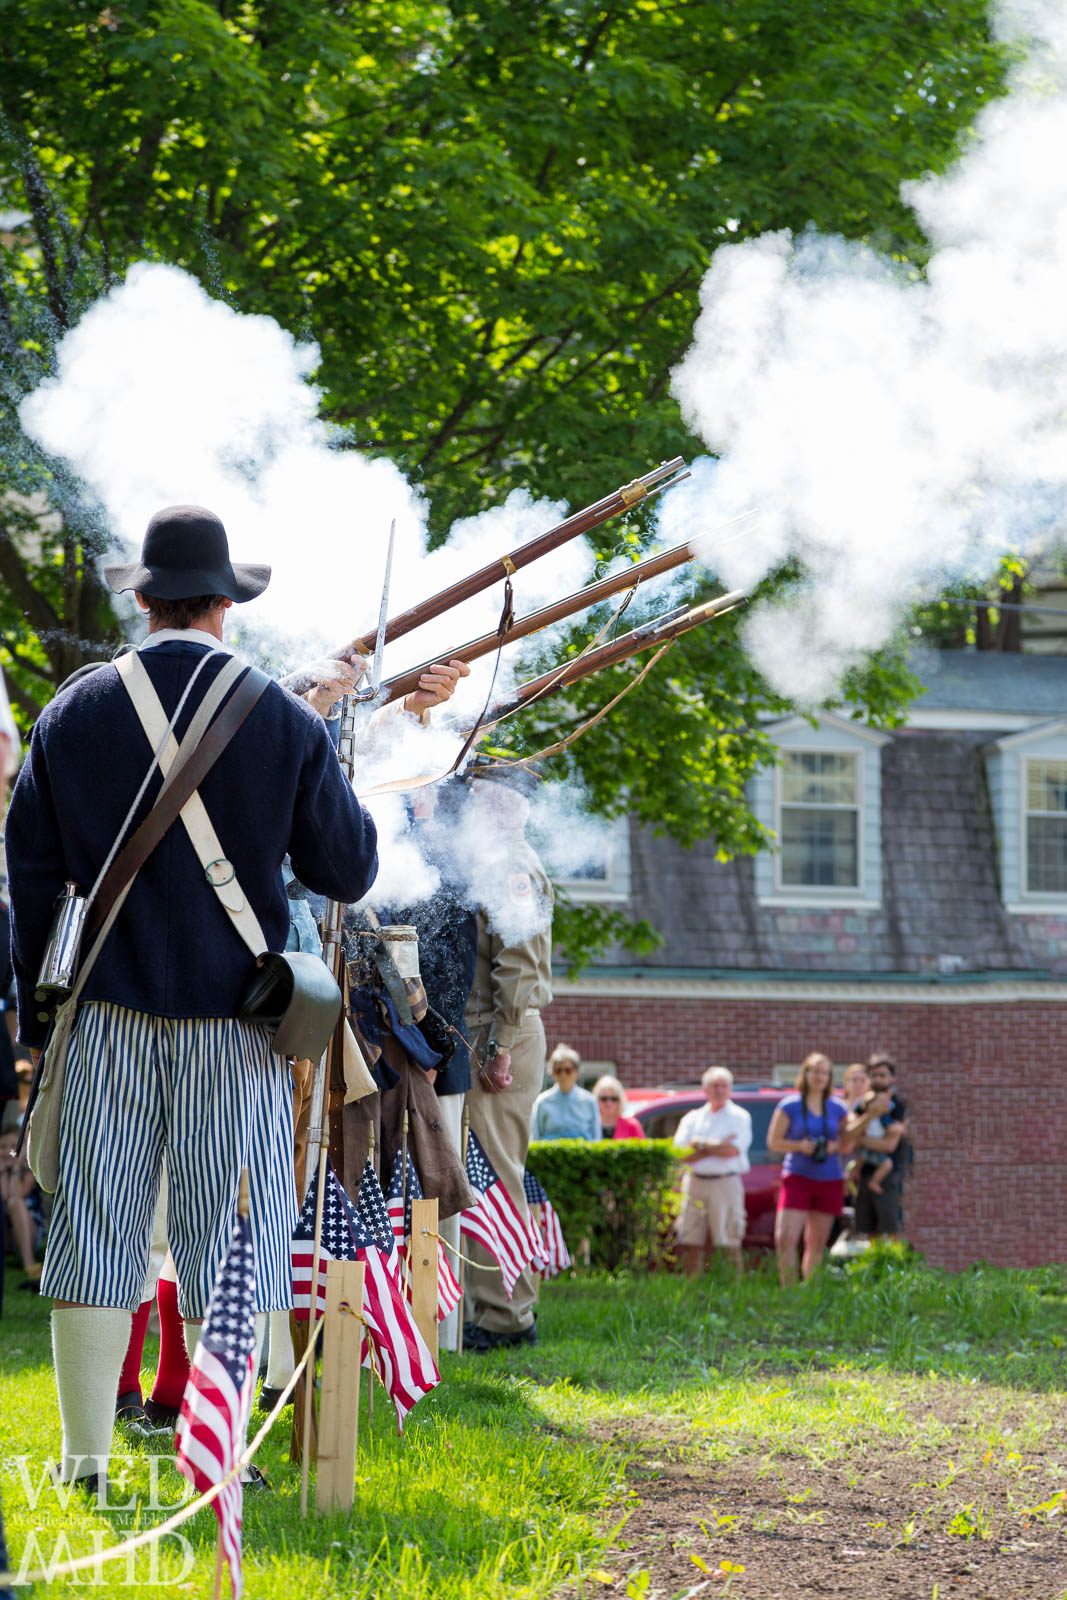 Firing Muskets on Memorial Day - Wednesdays in Marblehead